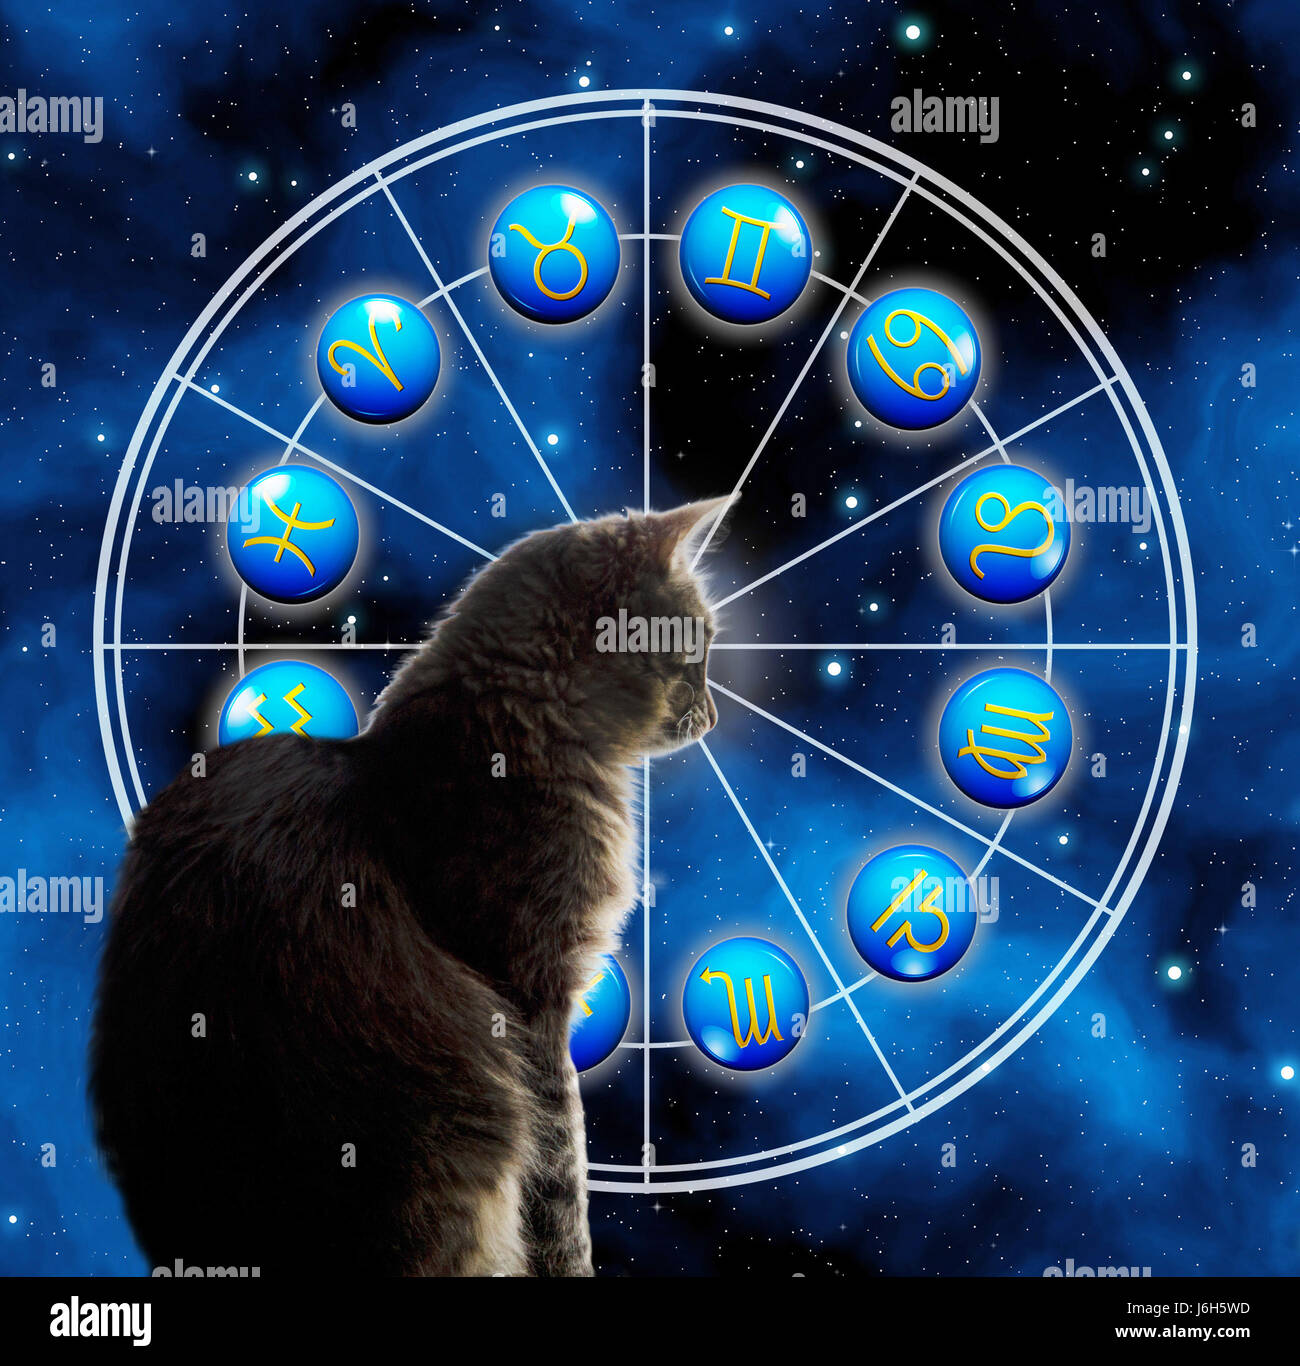 cat and astrology wheel with all zodiac signs - Stock Image